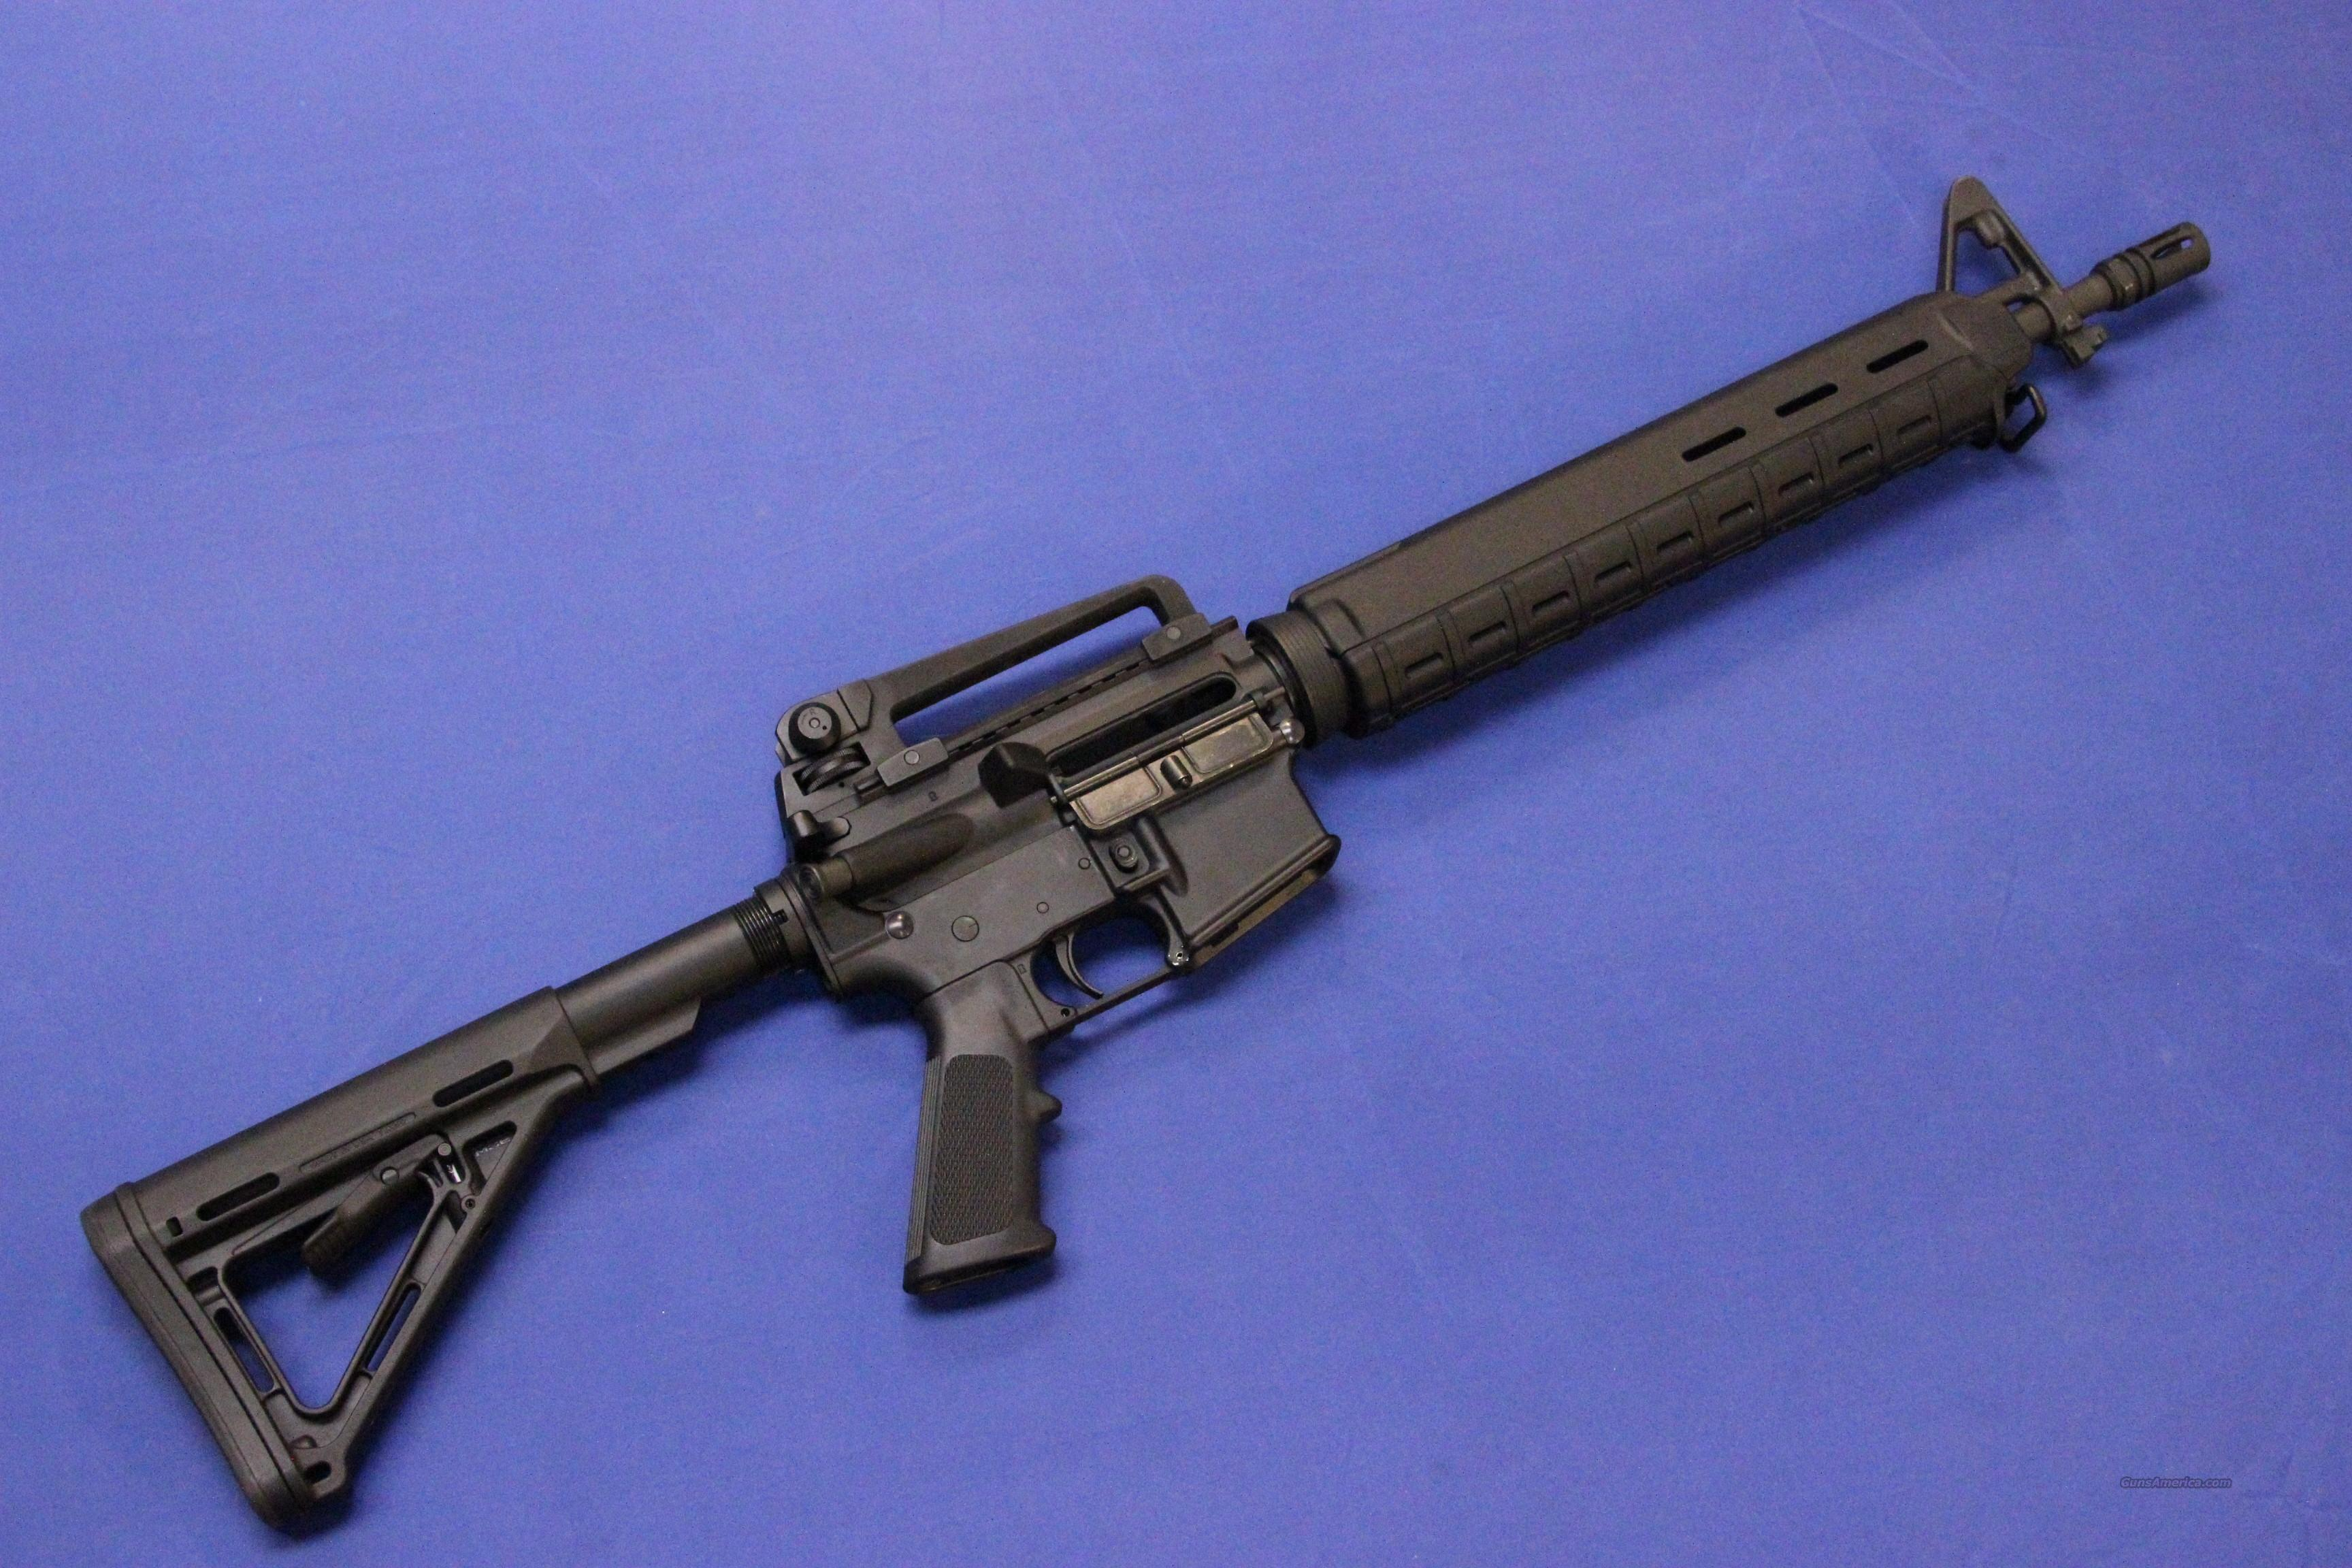 ANDERSON ARMS AM-15 .223/5.56 NATO  Guns > Rifles > AR-15 Rifles - Small Manufacturers > Complete Rifle